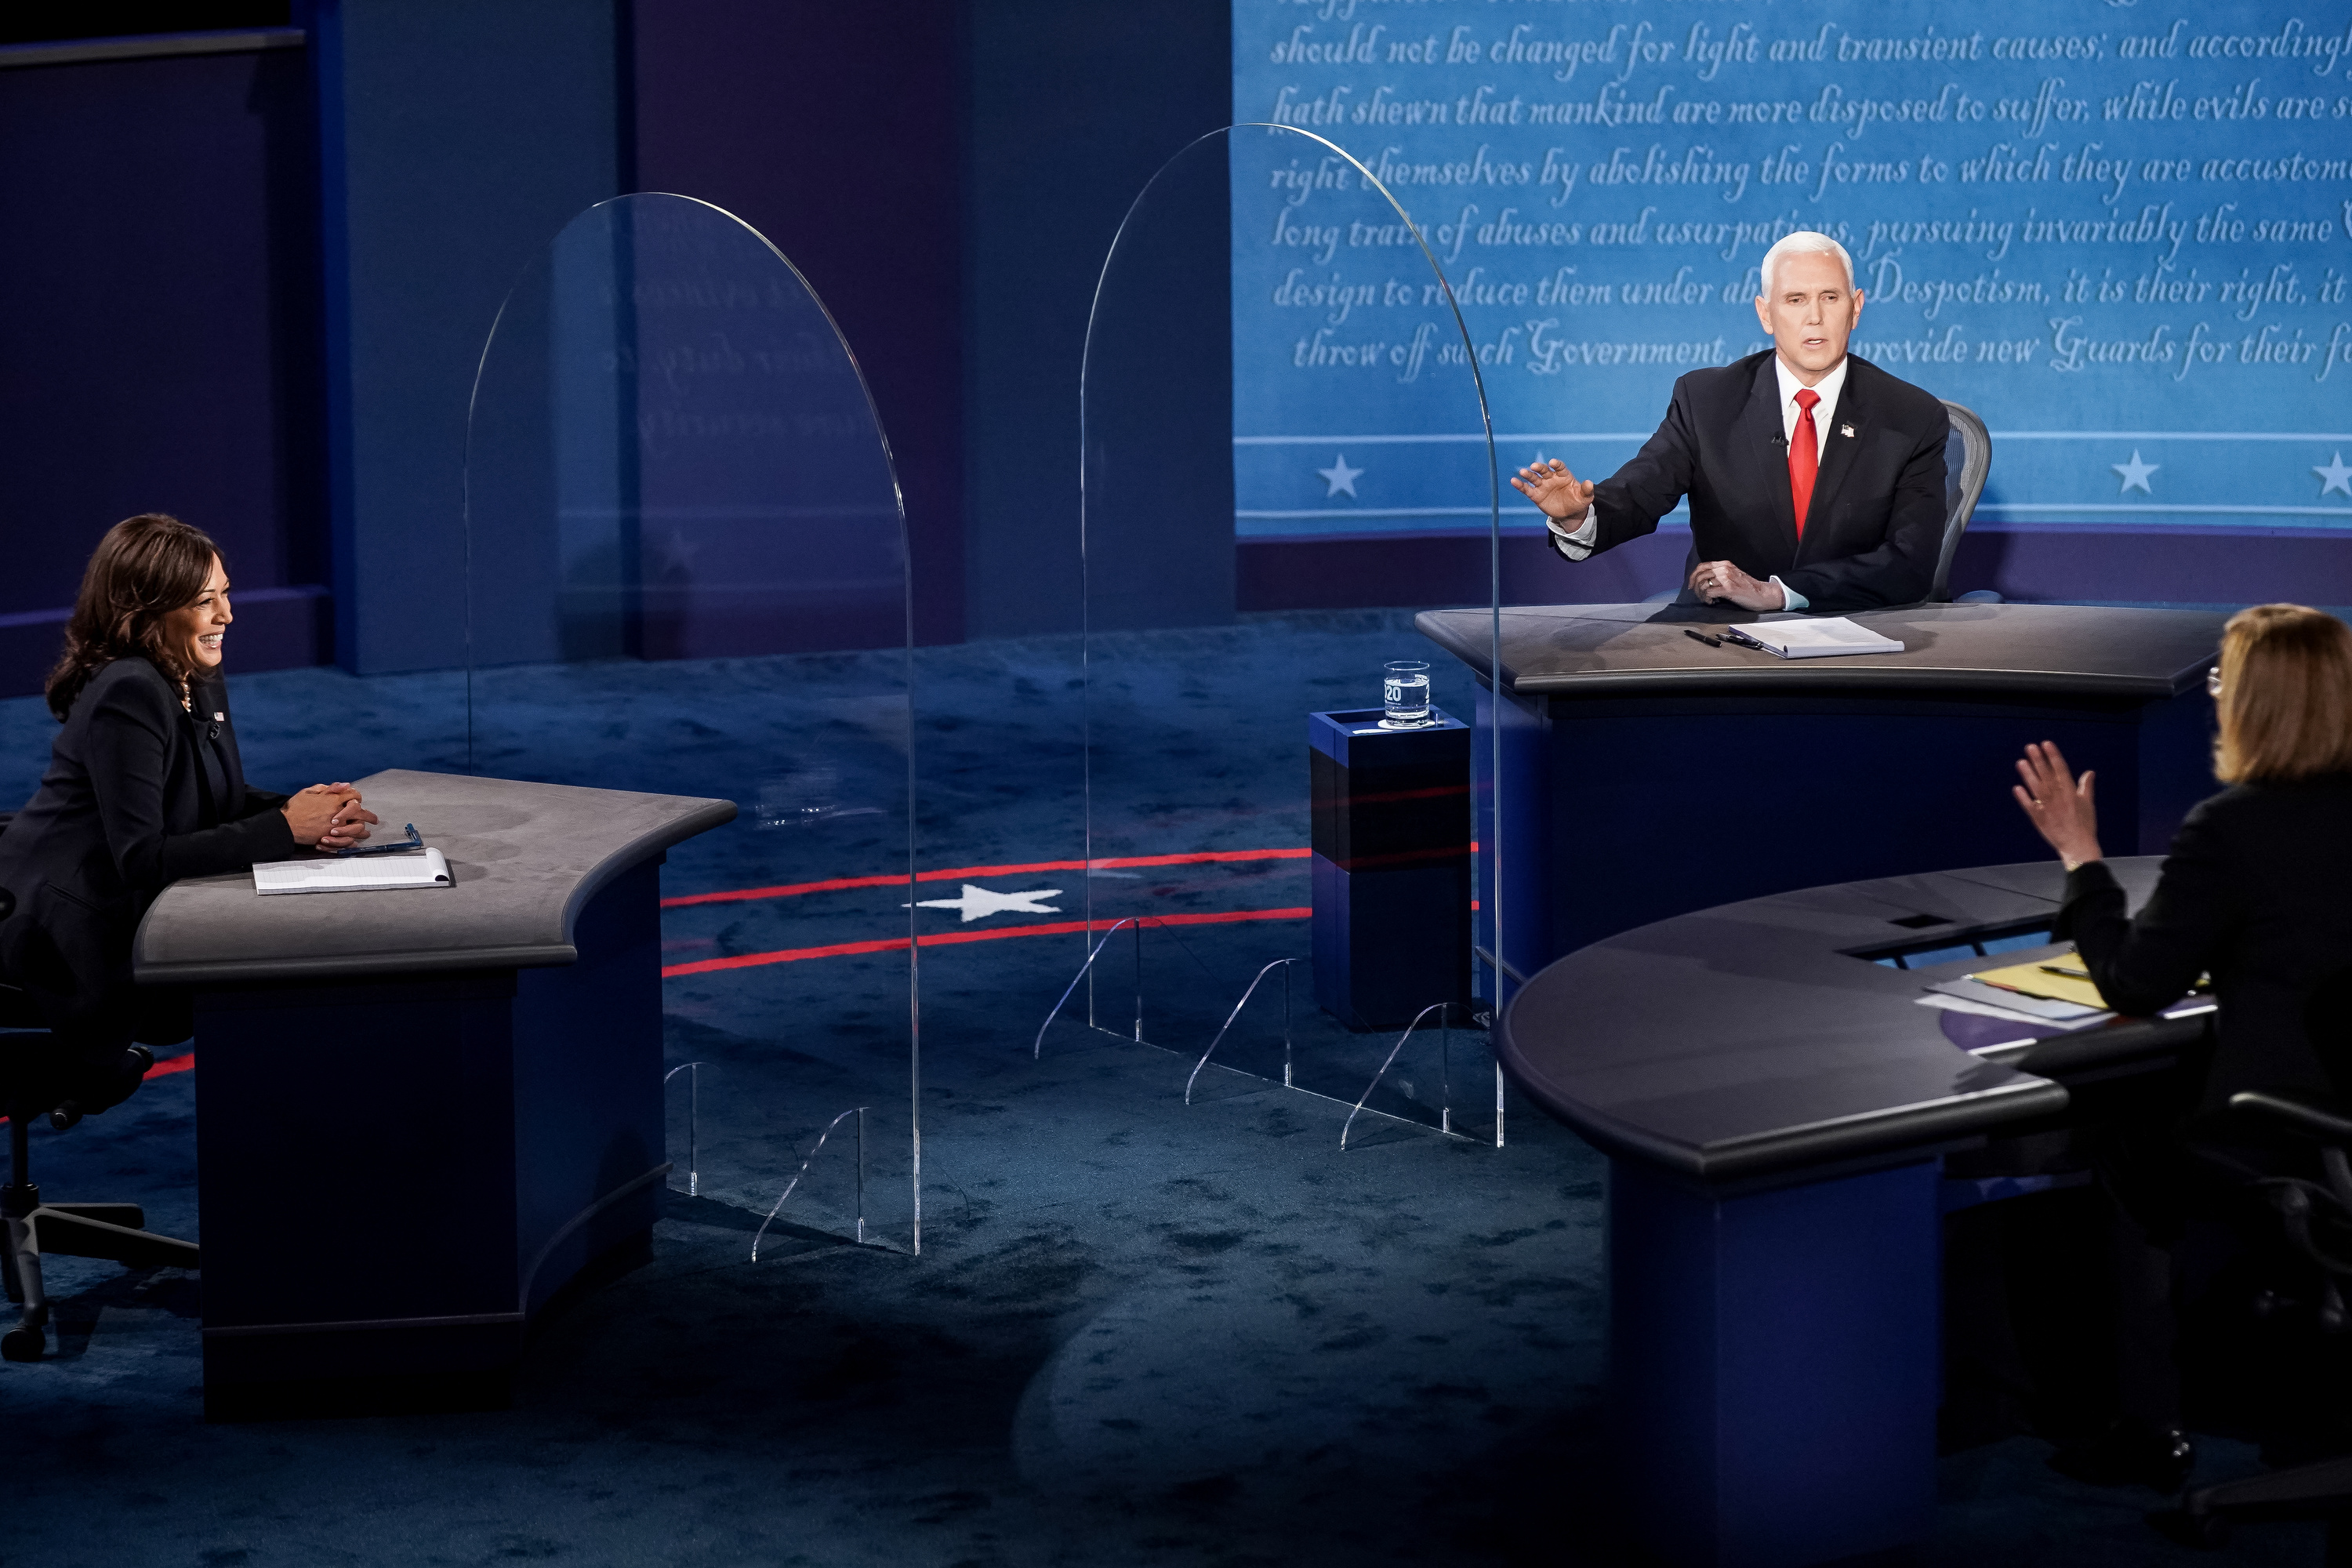 Moderator Susan Page tries to reign in Vice President Mike Pence as he talks past his allotted time during his debate against Democratic challenger Sen. Kamala Harris, D-Calif., in the vice presidential debate at Kingsbury Hall at the University of Utah in Salt Lake City on Wednesday, Oct. 7, 2020.